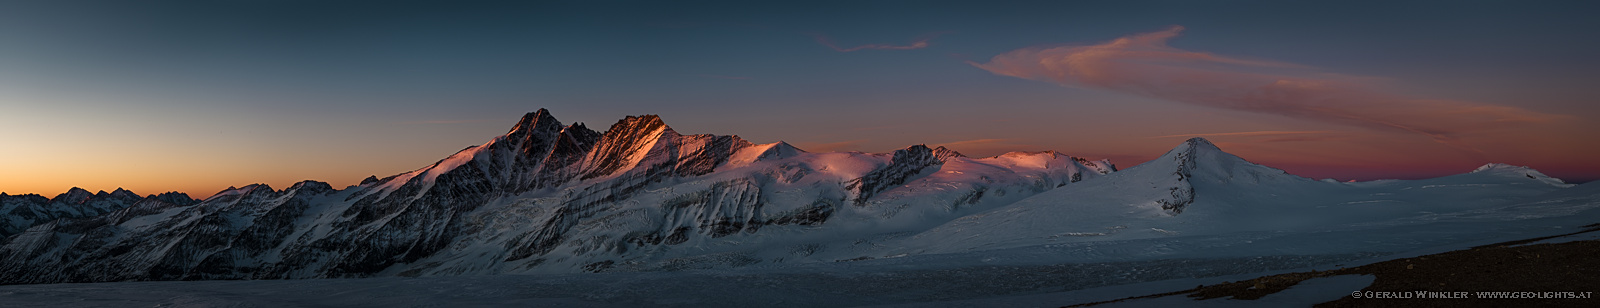 pano_glockner-sunrise_3833-foto.at